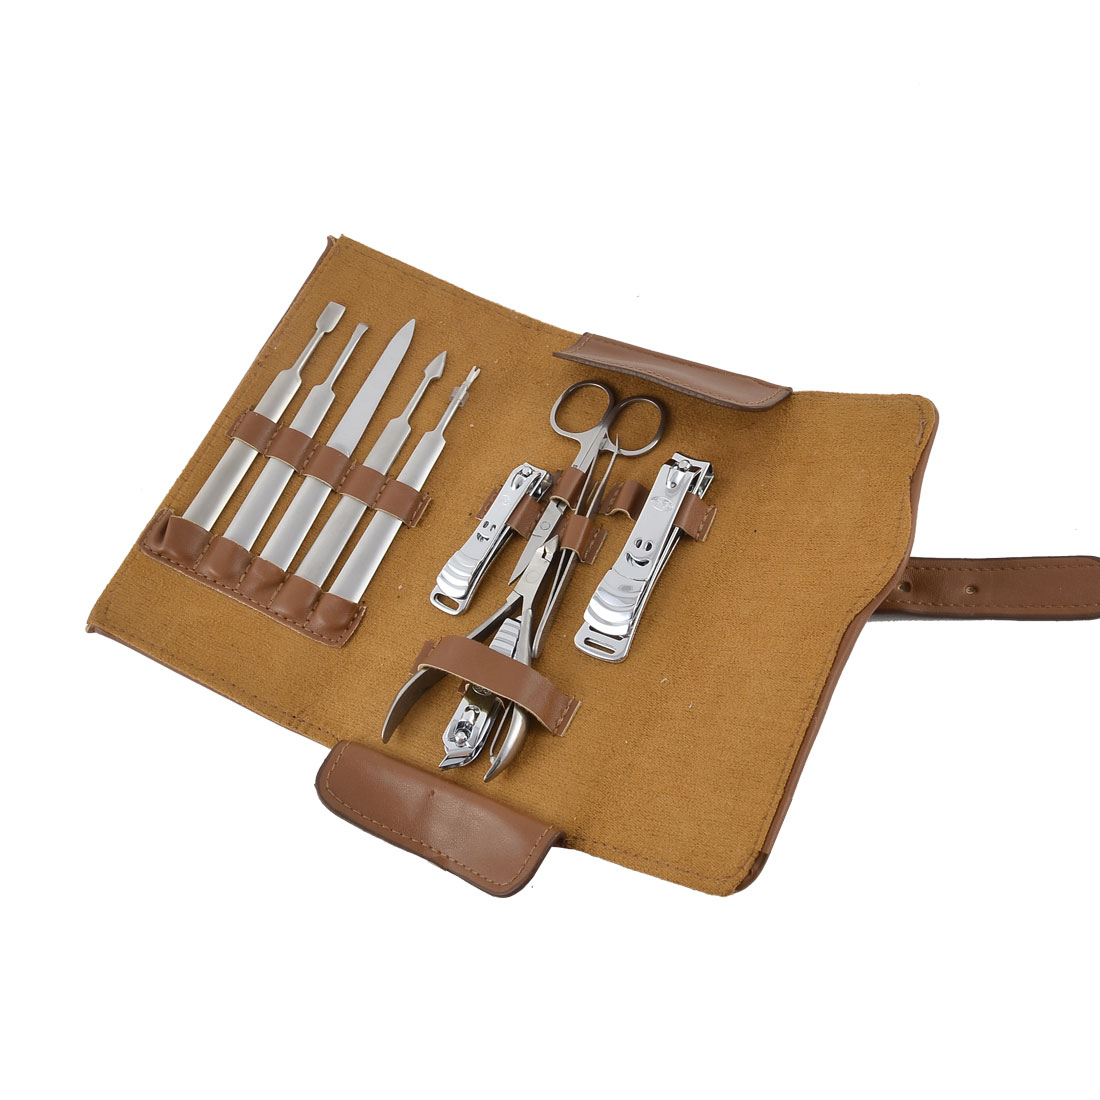 11 in 1 Faux Leather Case Manicure Nail Clipper Cuticle Grooming Kit Set Brown